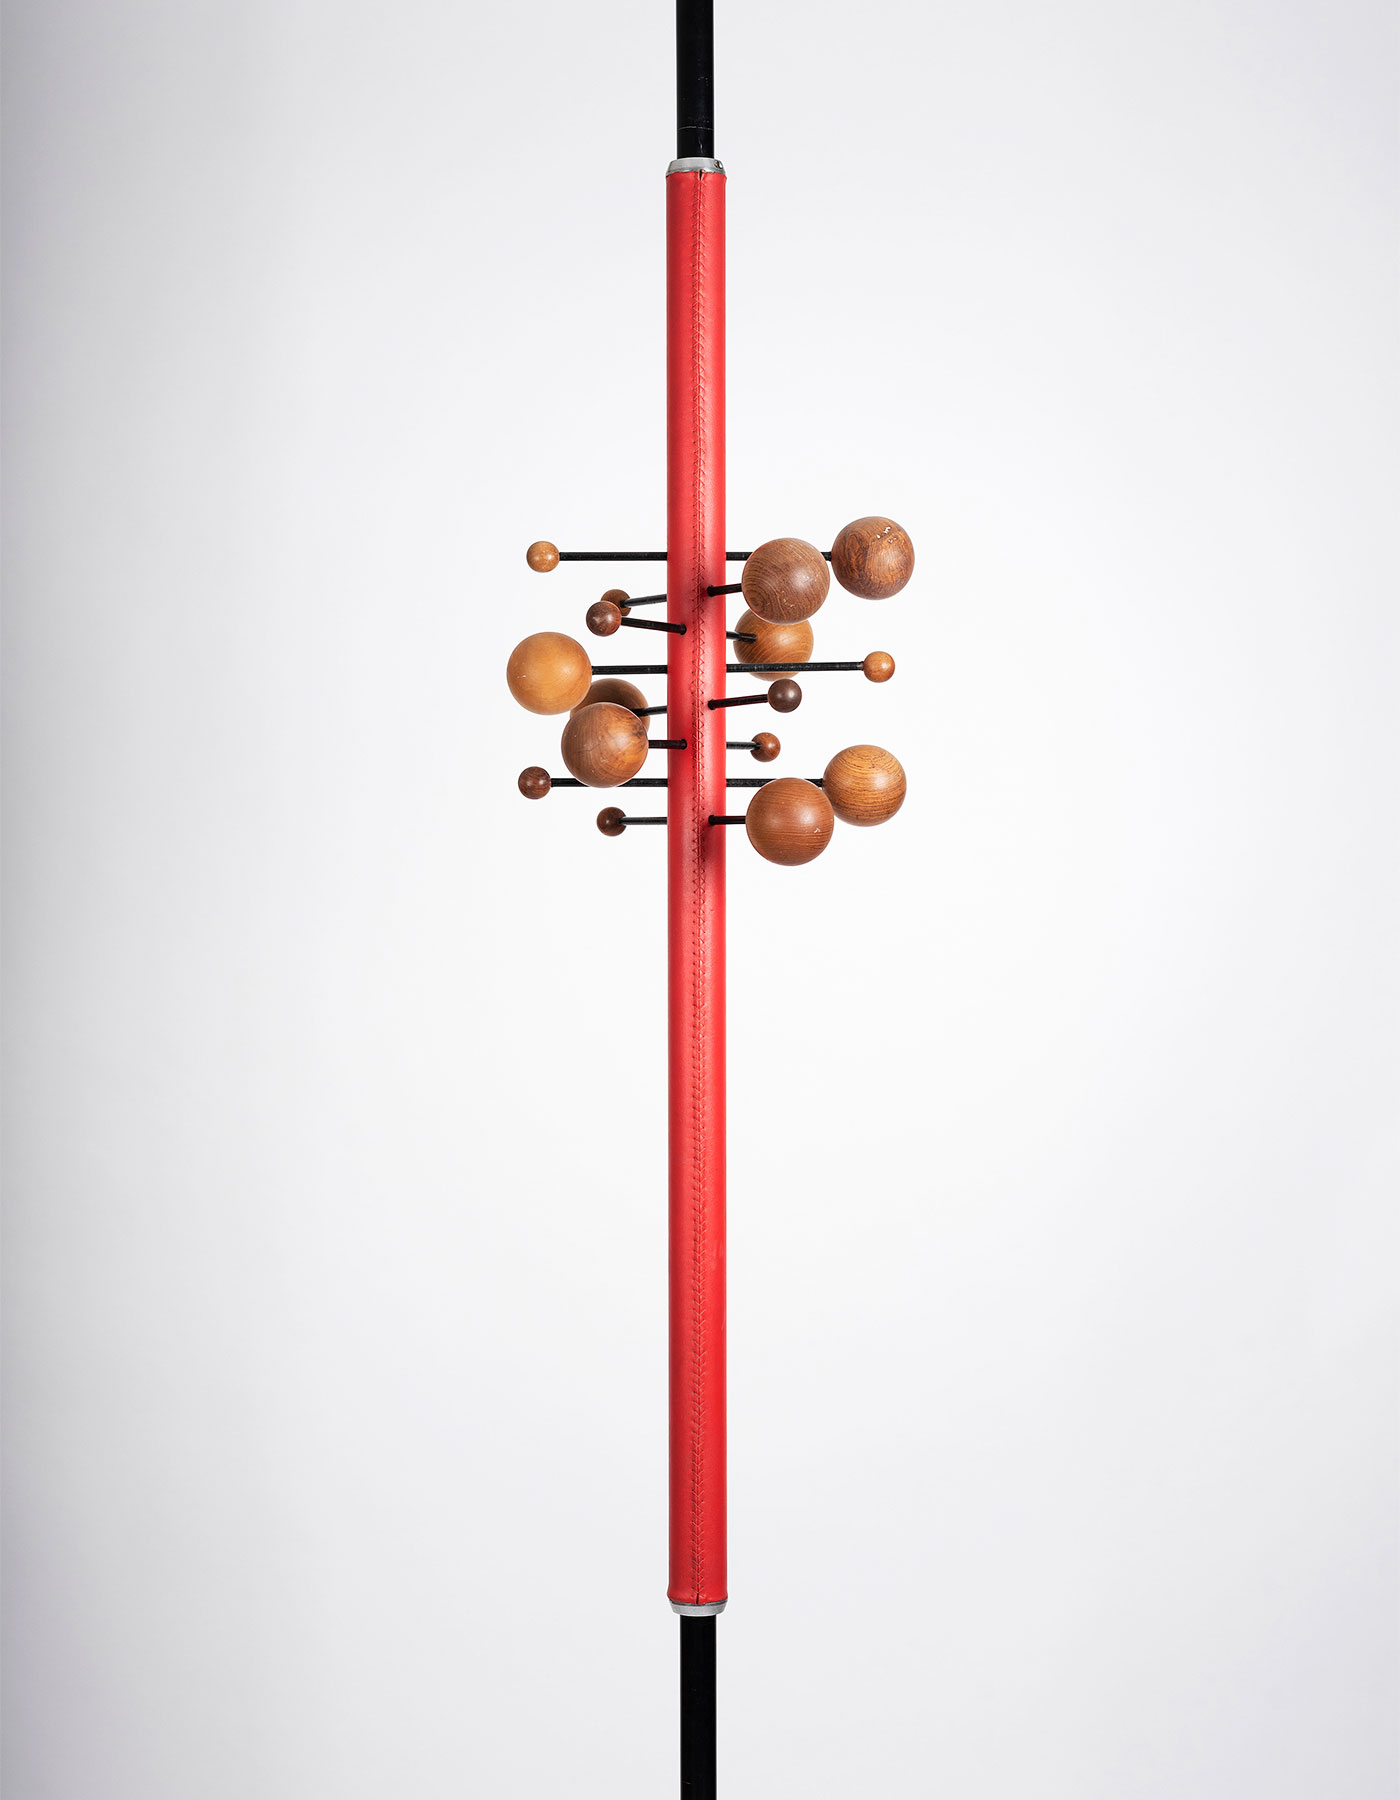 Osvaldo Borsani AT16 red coat rack manufactured by Tecno at Italian design and art gallery Casati Gallery